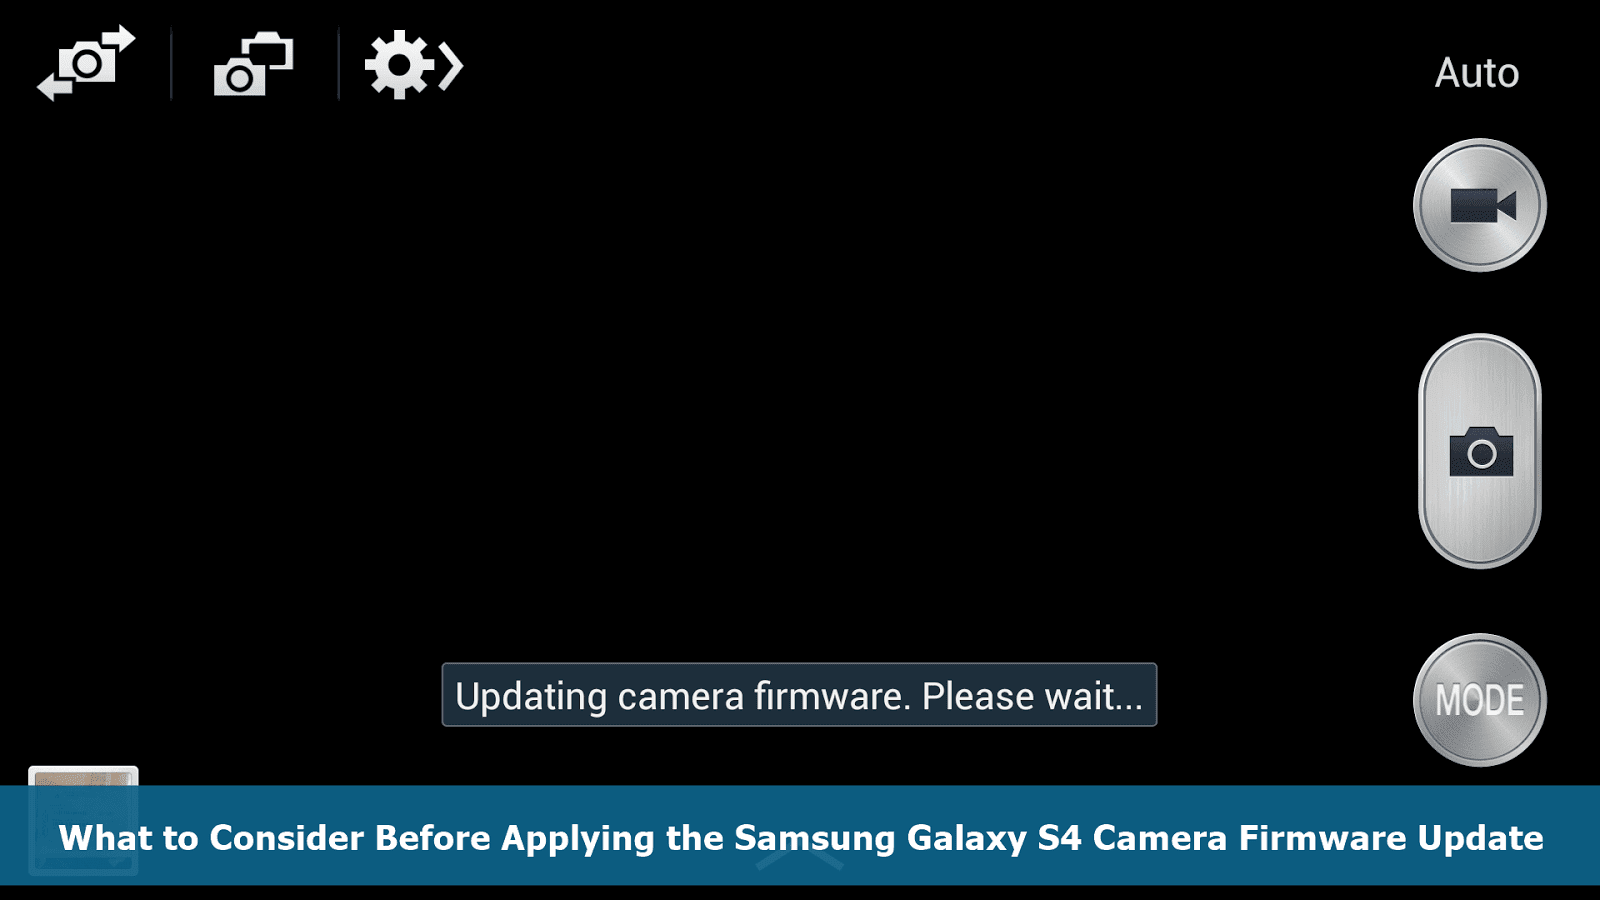 Samsung Galaxy S4 Camera Firmware Update